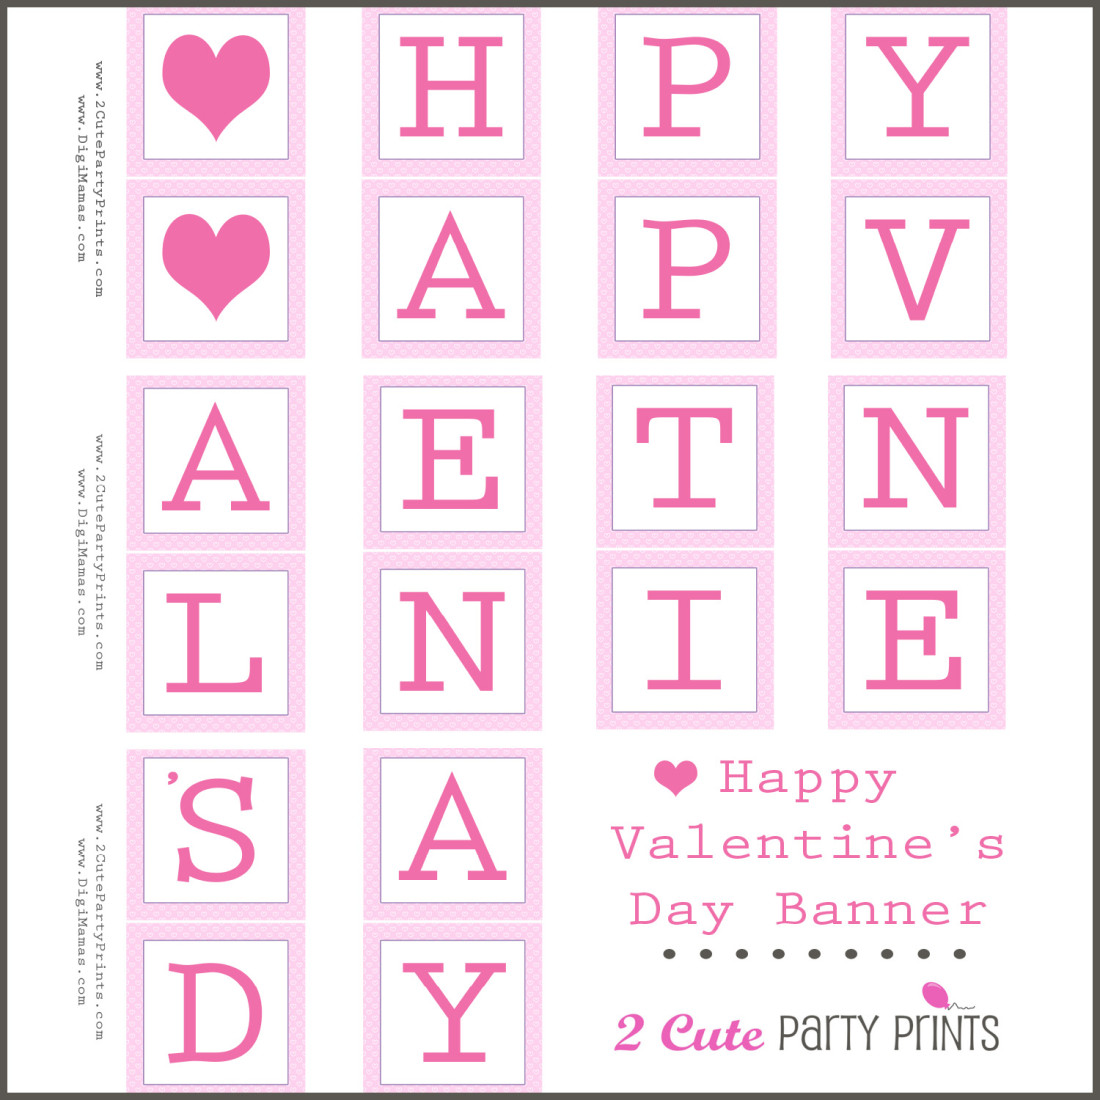 8 Best Images of Printable Valentine's Day Banners - Free ... Happy Valentines Day Banner Printable